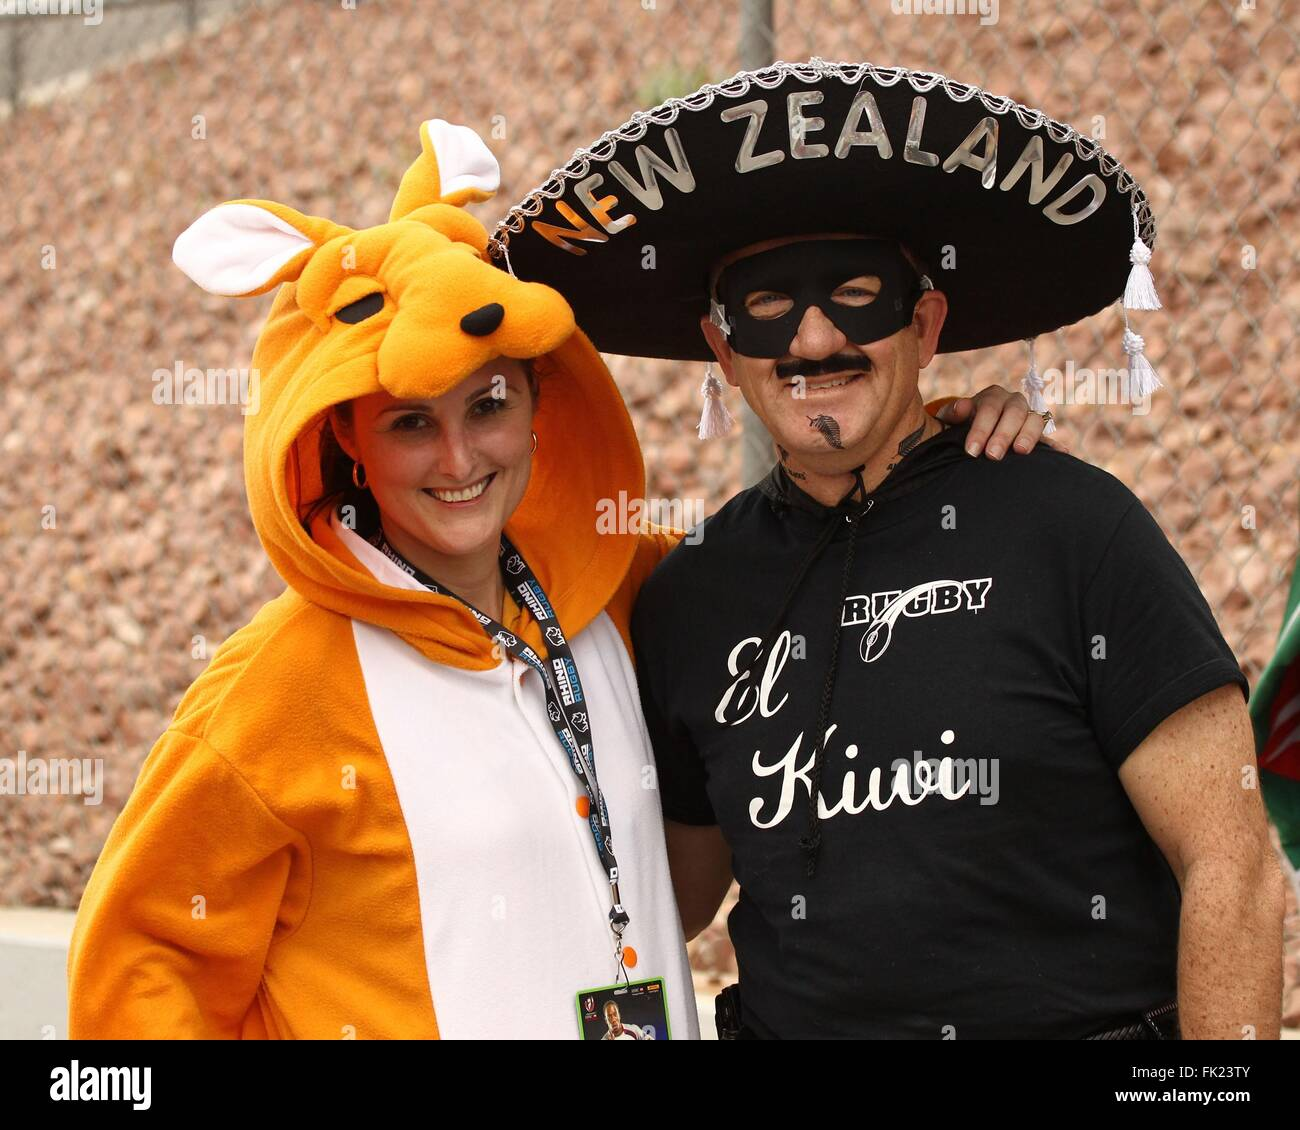 Las Vegas, NV, USA. 5th Mar, 2016. Rugby fans wearing Kangaroo and Zoro costumes in attendance for USA Sevens International - Stock Image